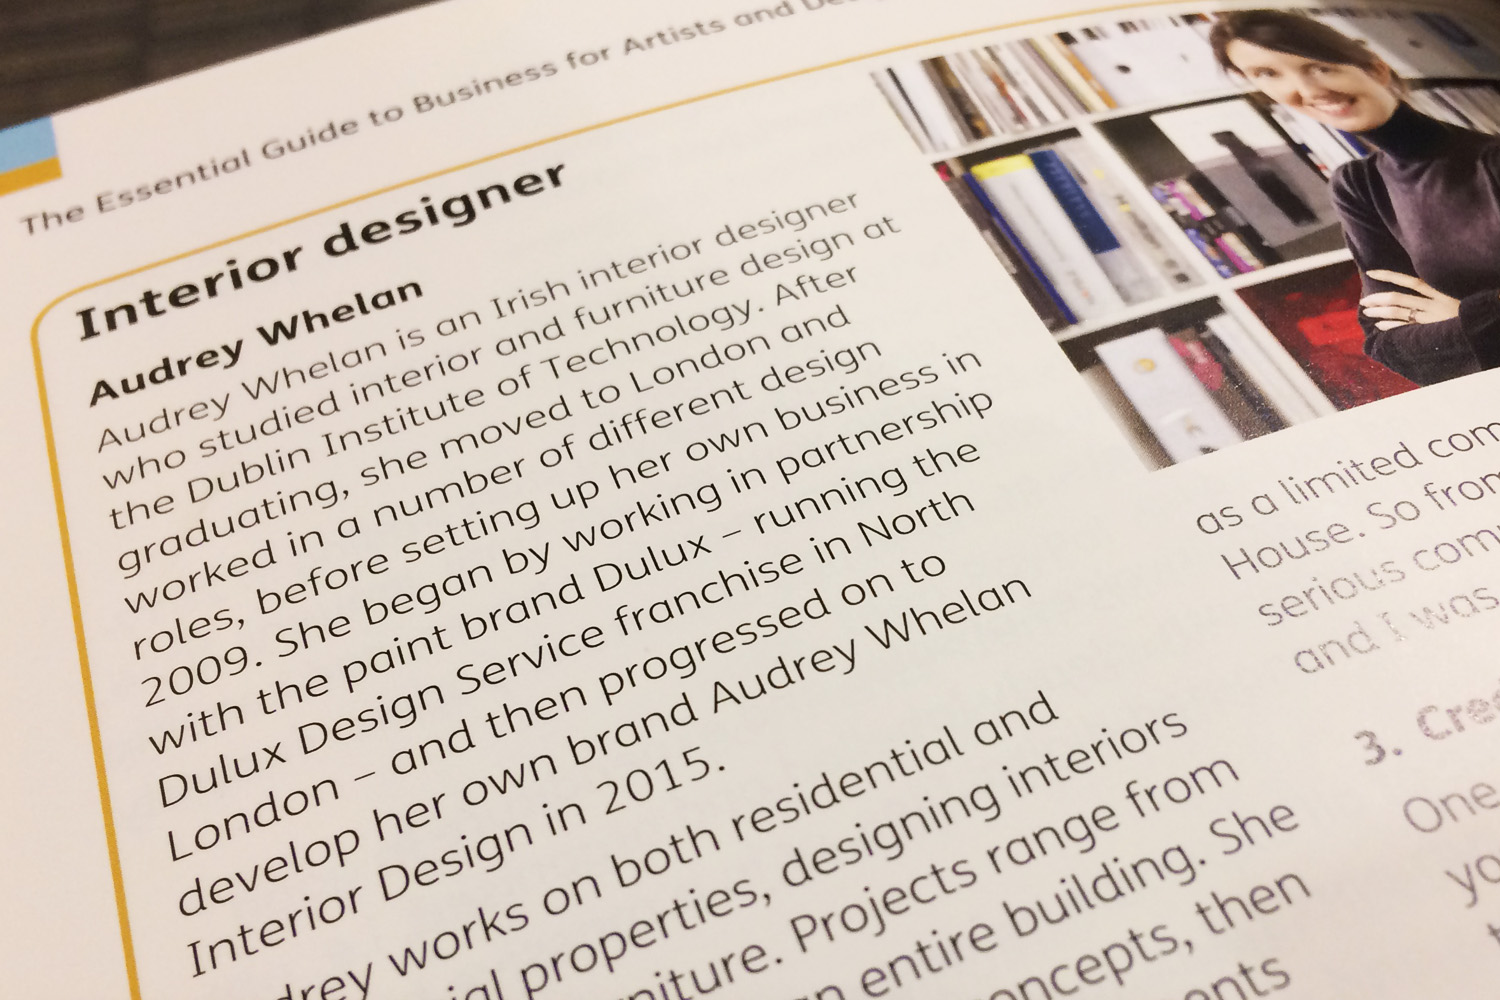 A snippet from the book 'The Essential Guide to Business for Artists and Designers'